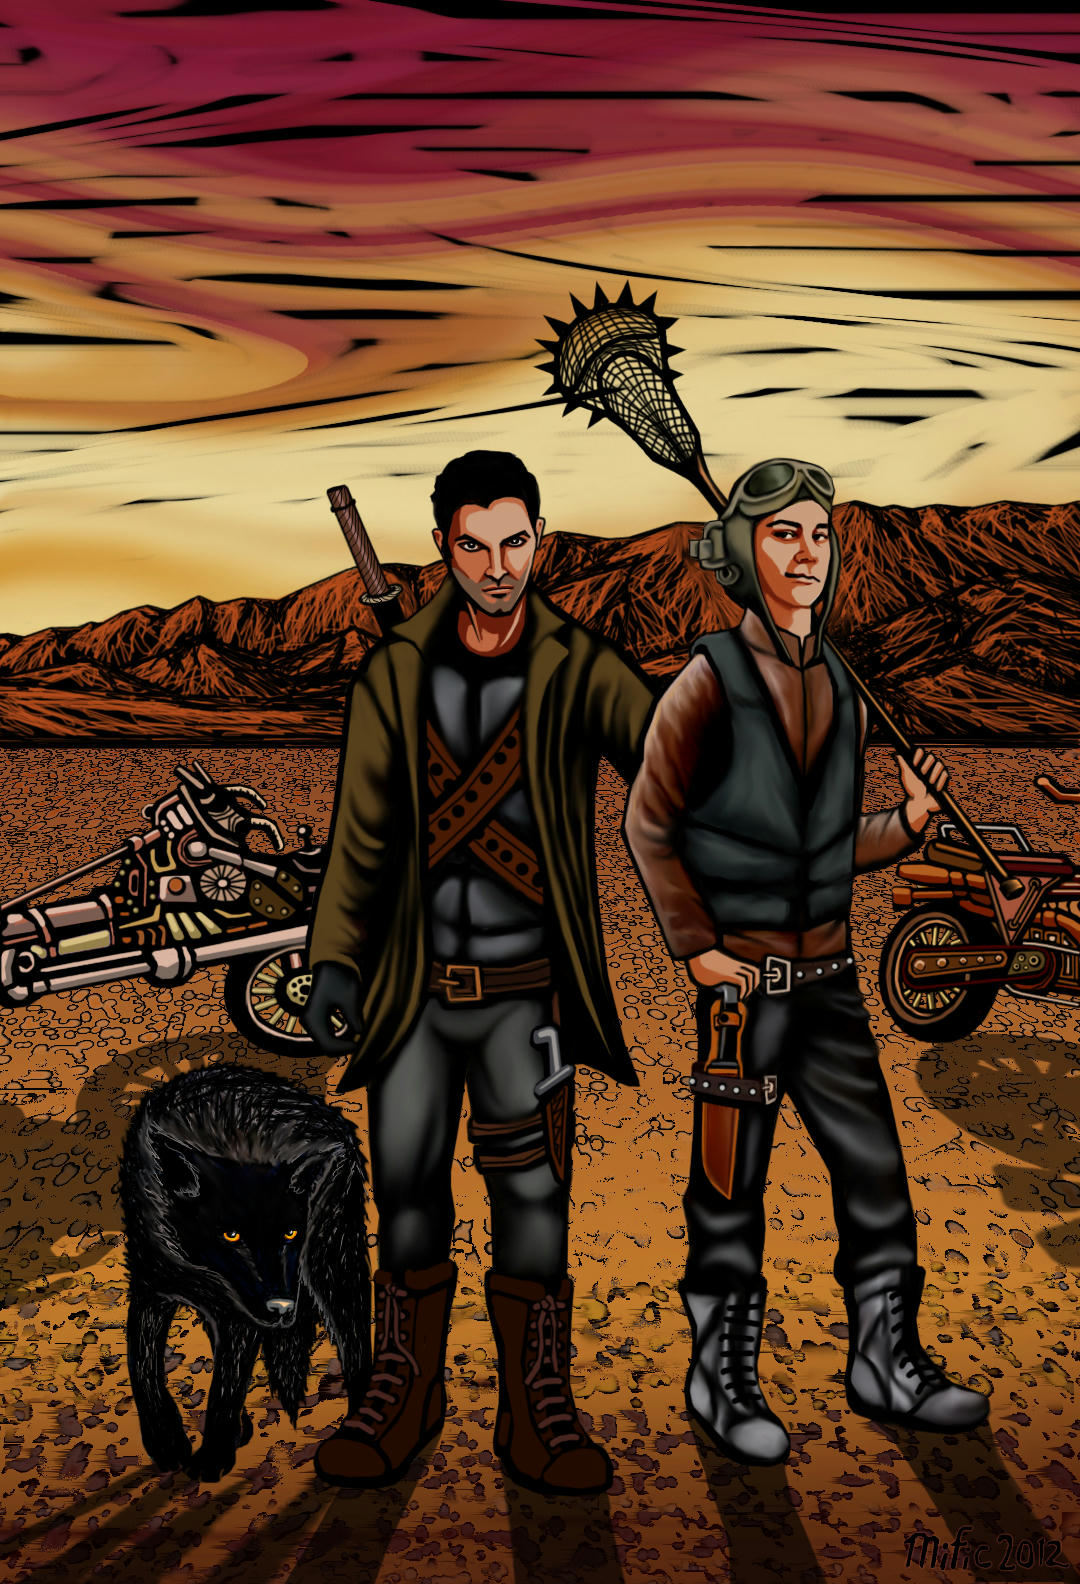 Derek and stiles in a desert in leathers, with weird motorbikes, a wolf and various swords and knifes - and a spiked lacrosse net